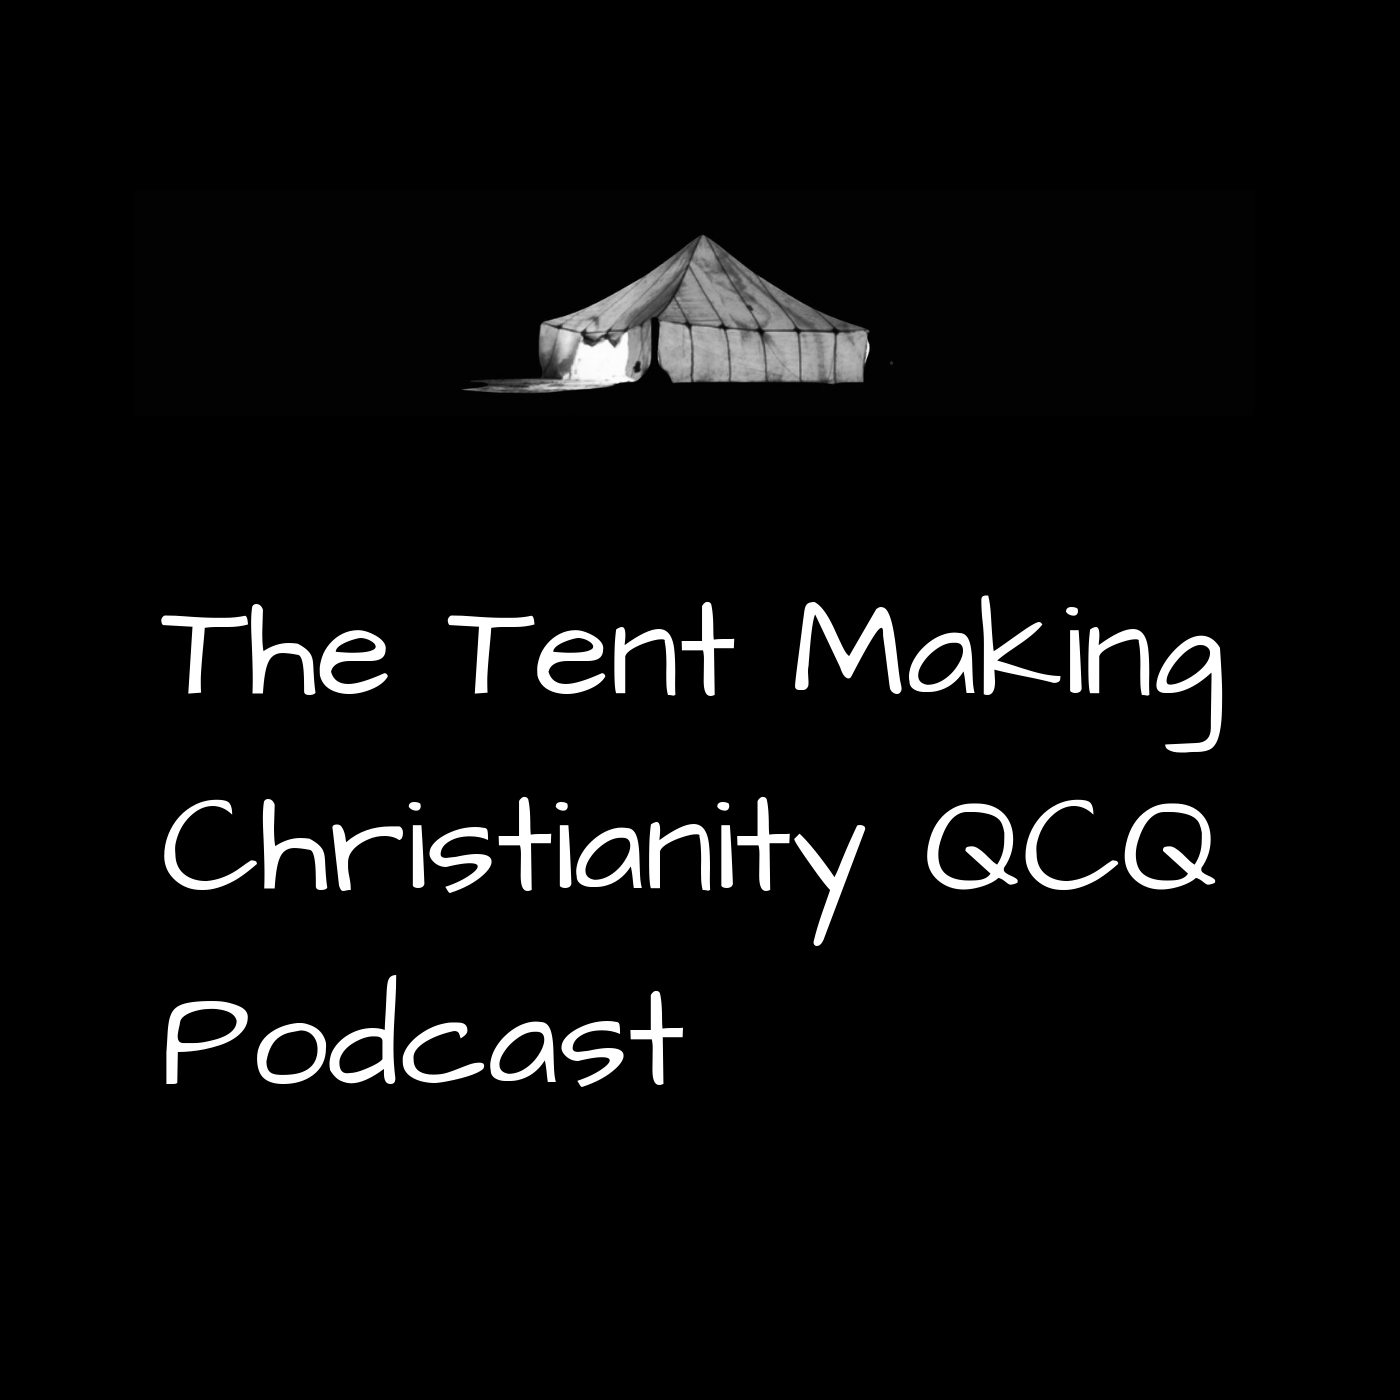 The Tent Making Christianity QCQ Podcast #225: Is Karma Taught In the Bible?